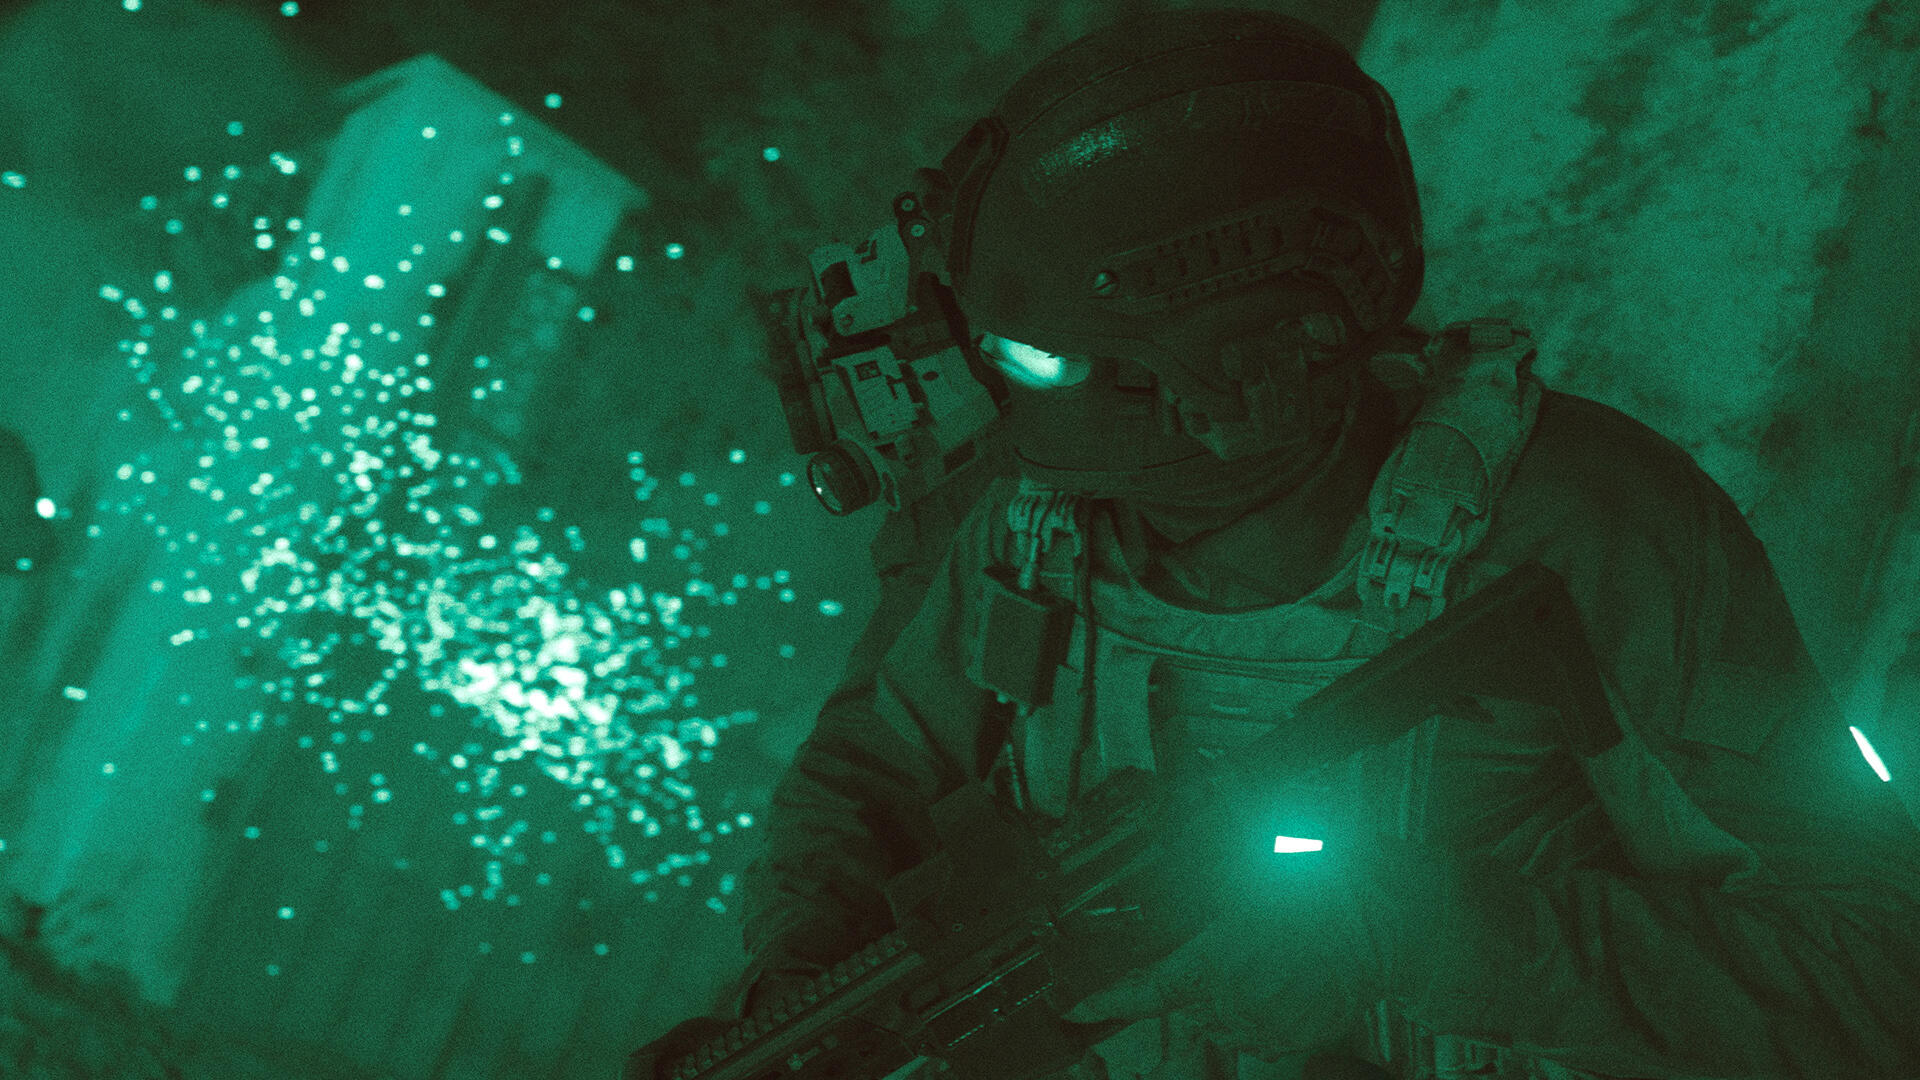 Call of Duty Modern Warfare Beta Start Times - Dates, Platforms, How to Access the Beta